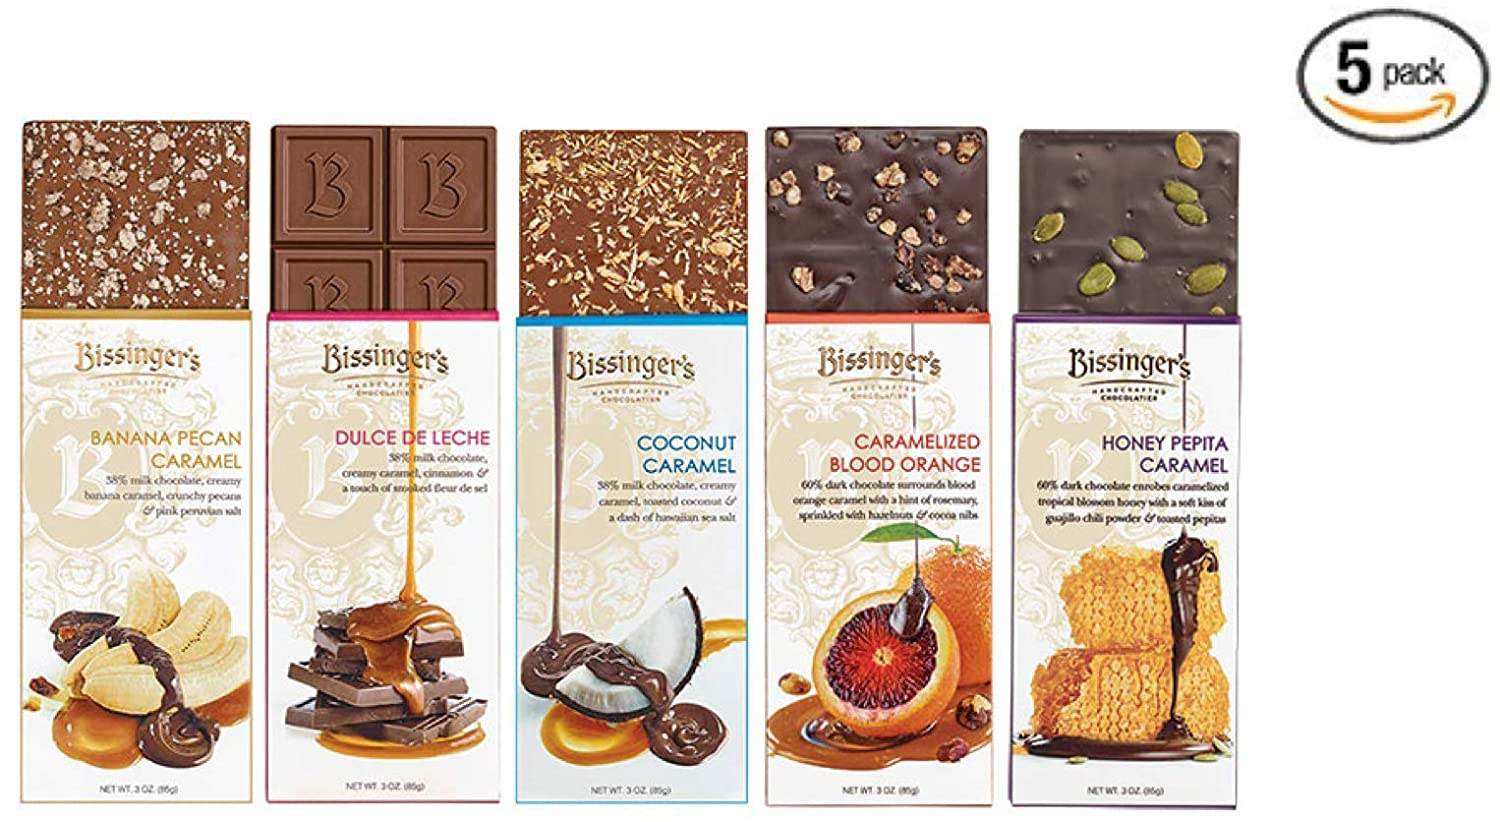 Amazon.com : Bissingers Chocolate Gift Set (6-Pack) - 3 Milk & 3 Dark Chocolate Varieties | The Ultimate Chocolate Lovers Gift! : Grocery & Gourmet Food